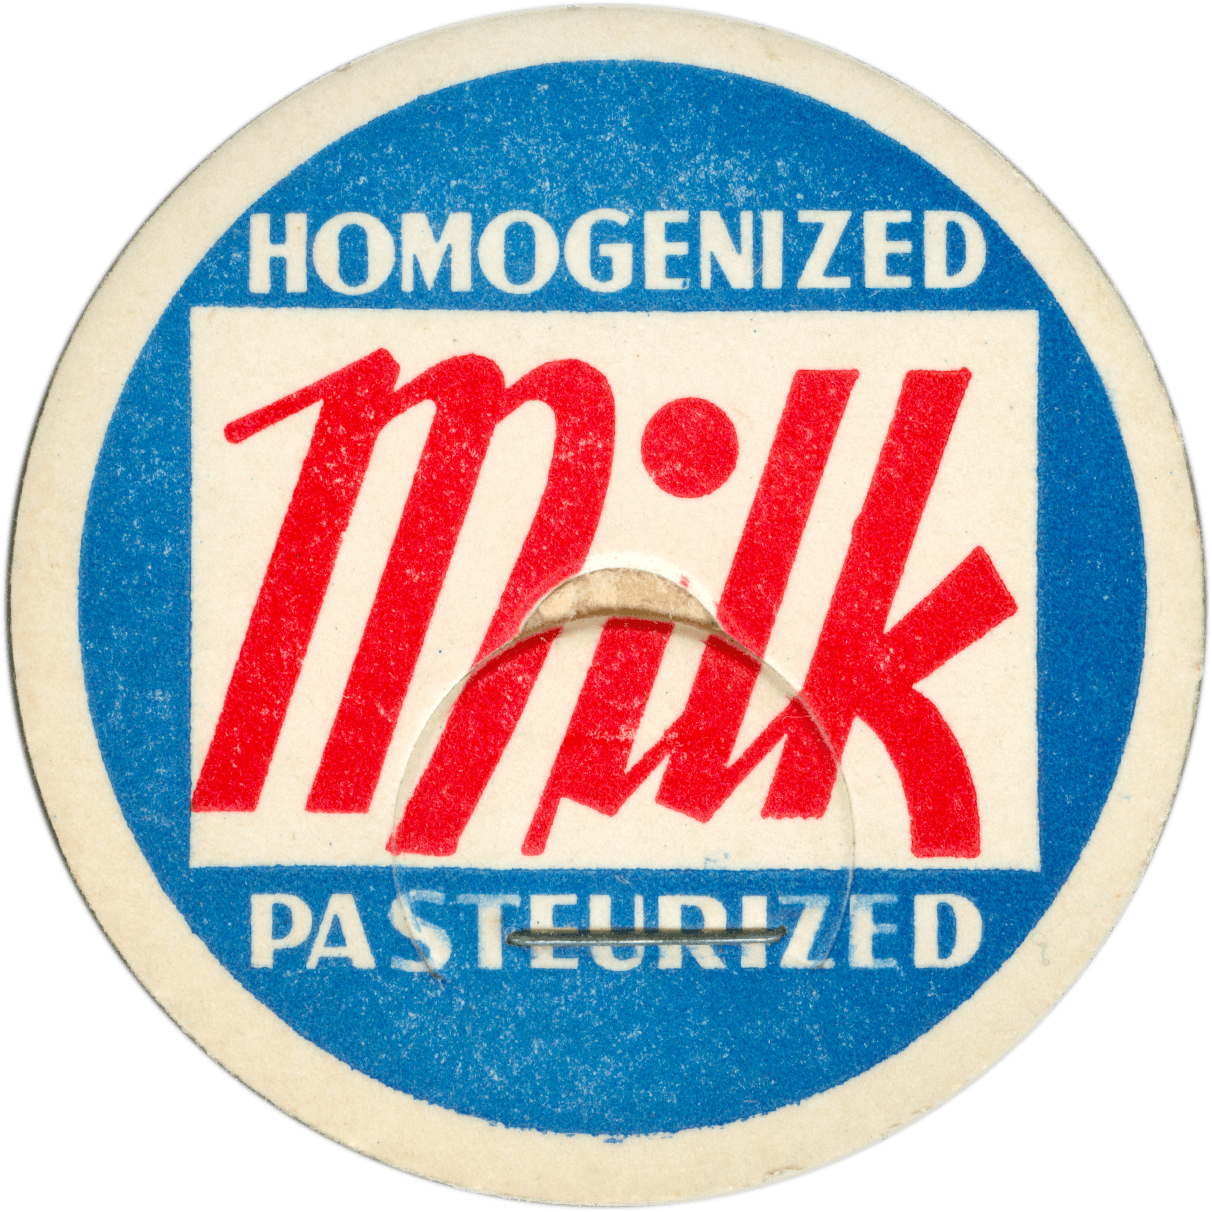 Homogenized Milk Pasteurized